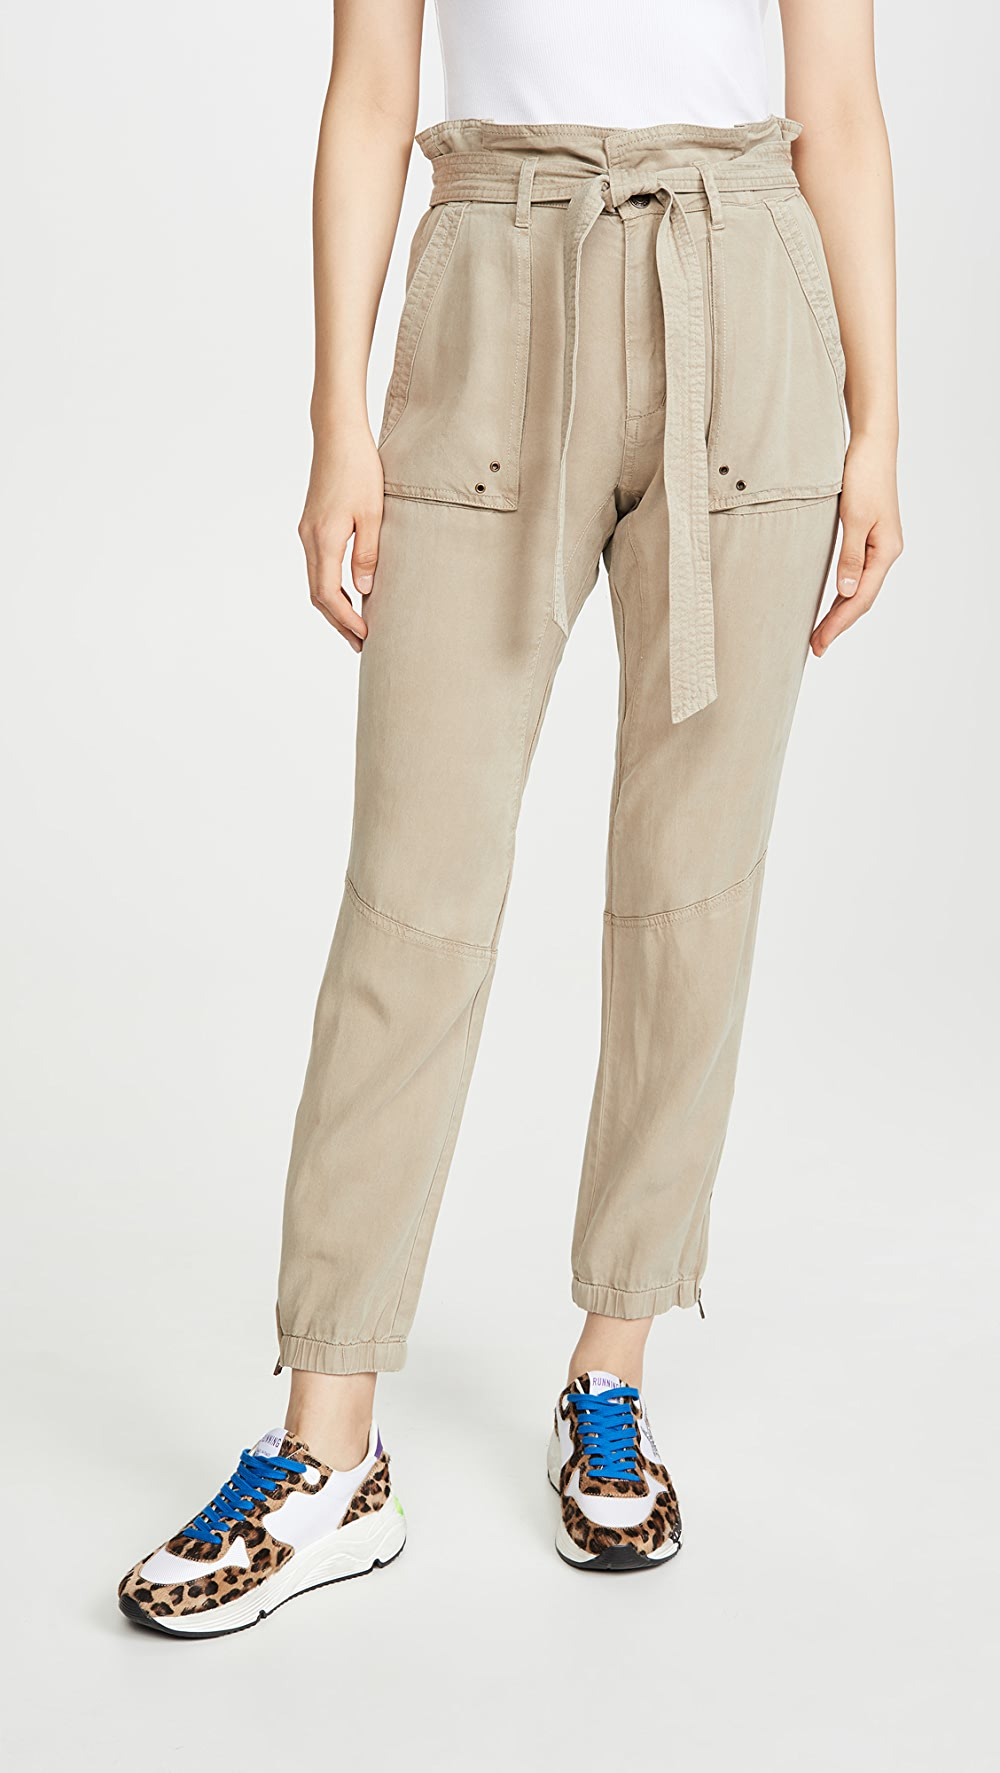 100% True Pam & Gela - Pants With Folded Waist With The Best Service